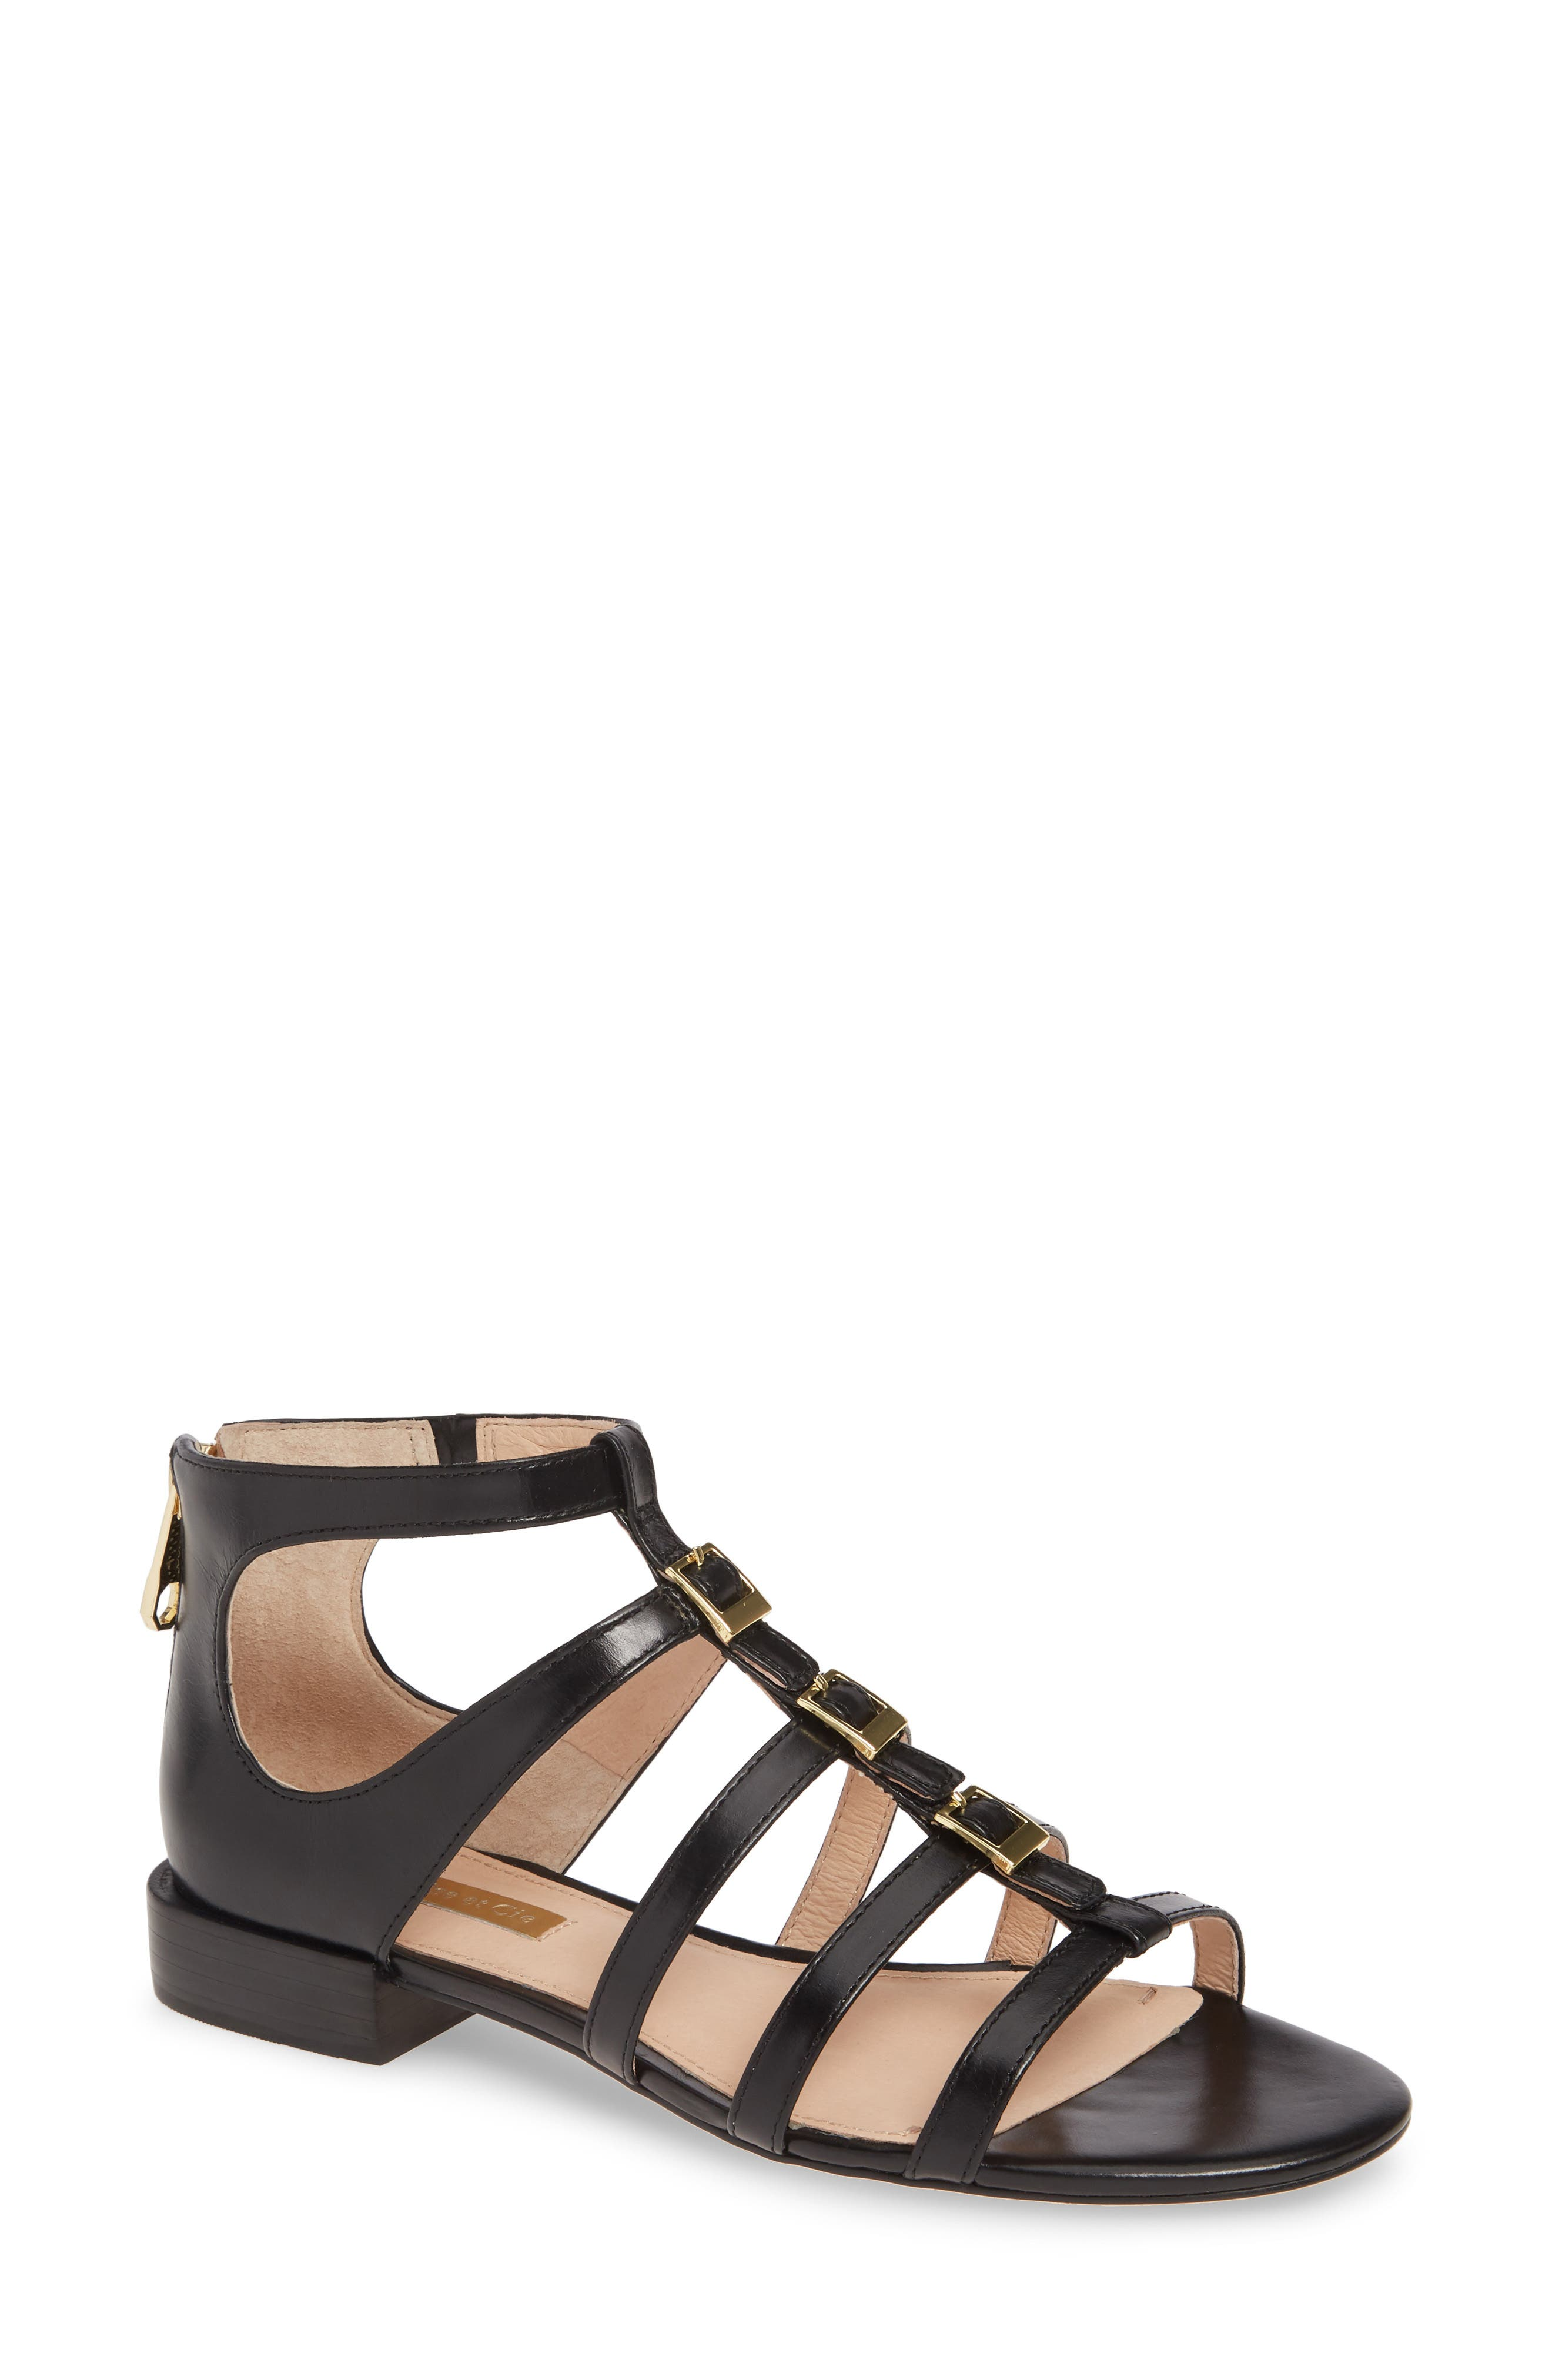 Louise et Cie Arely Strappy Sandal (Women)